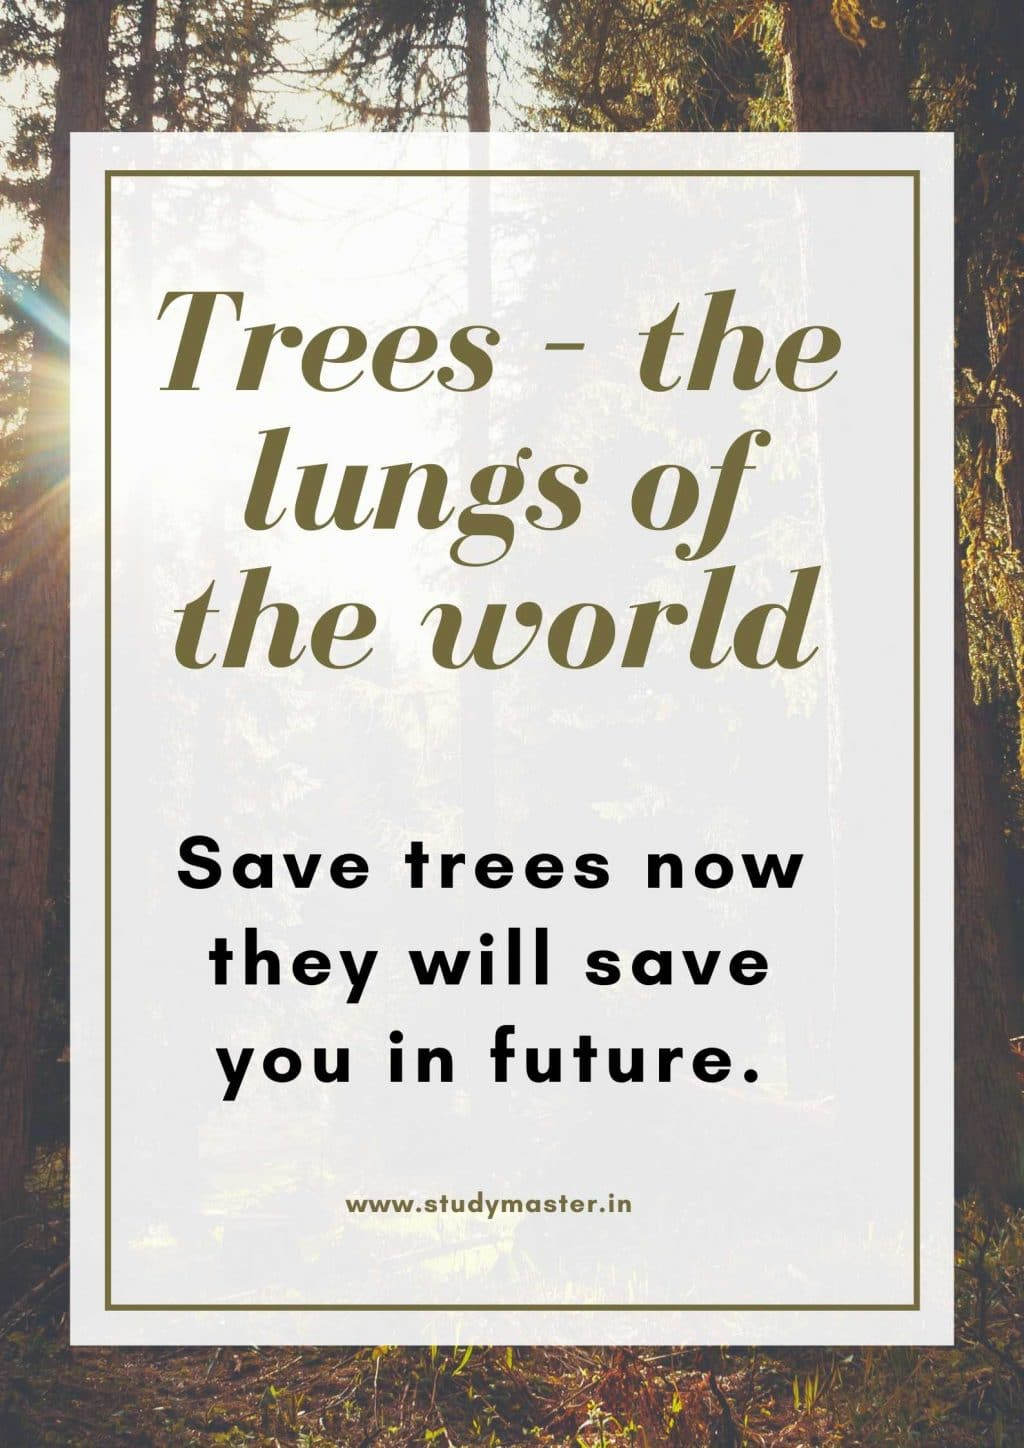 poster to save trees